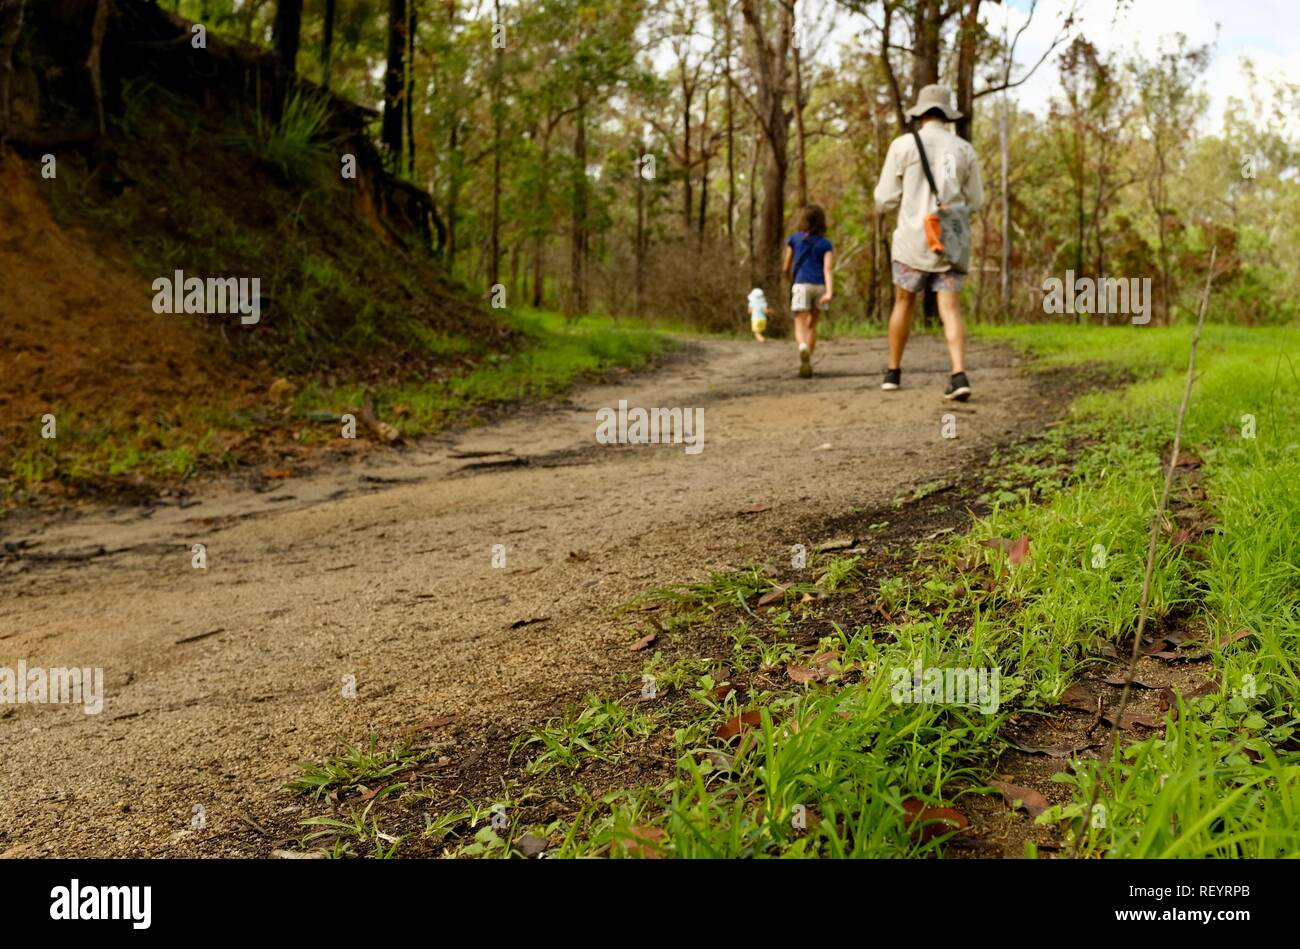 Children and man walking along a four wheel drive track through a forest, Mia Mia State Forest, Queensland, Australia - Stock Image